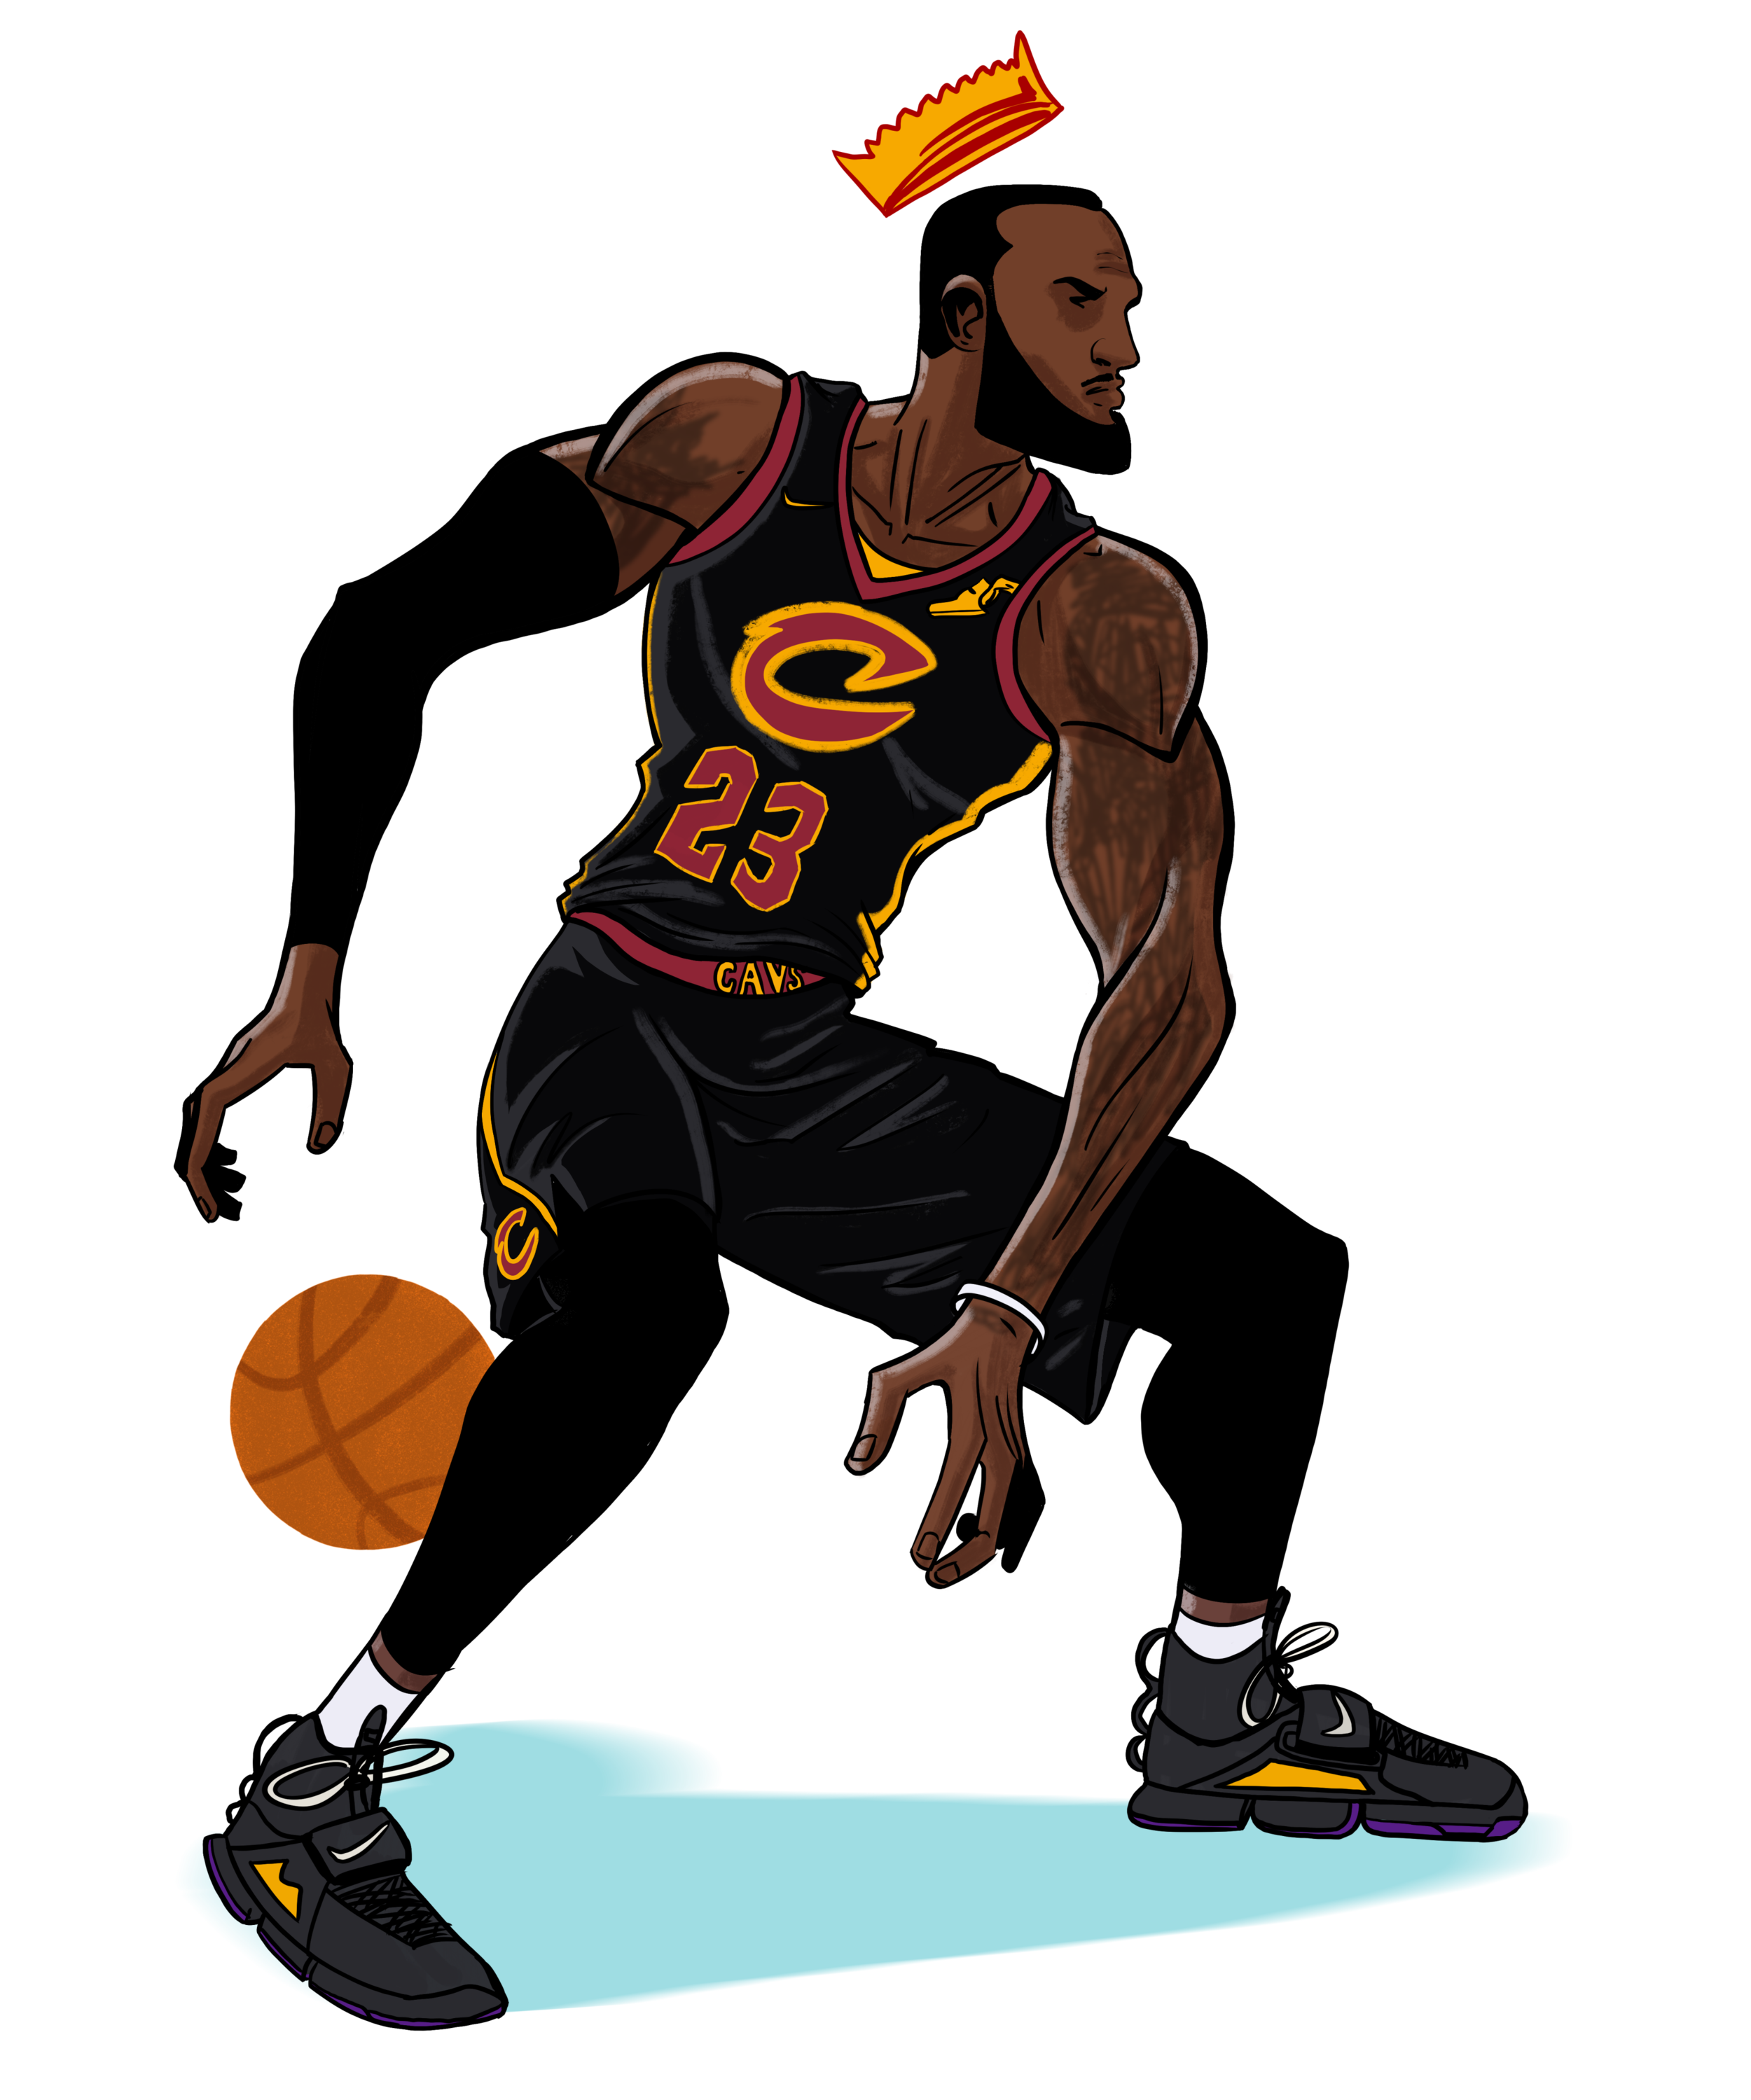 LeBron_Insta.png